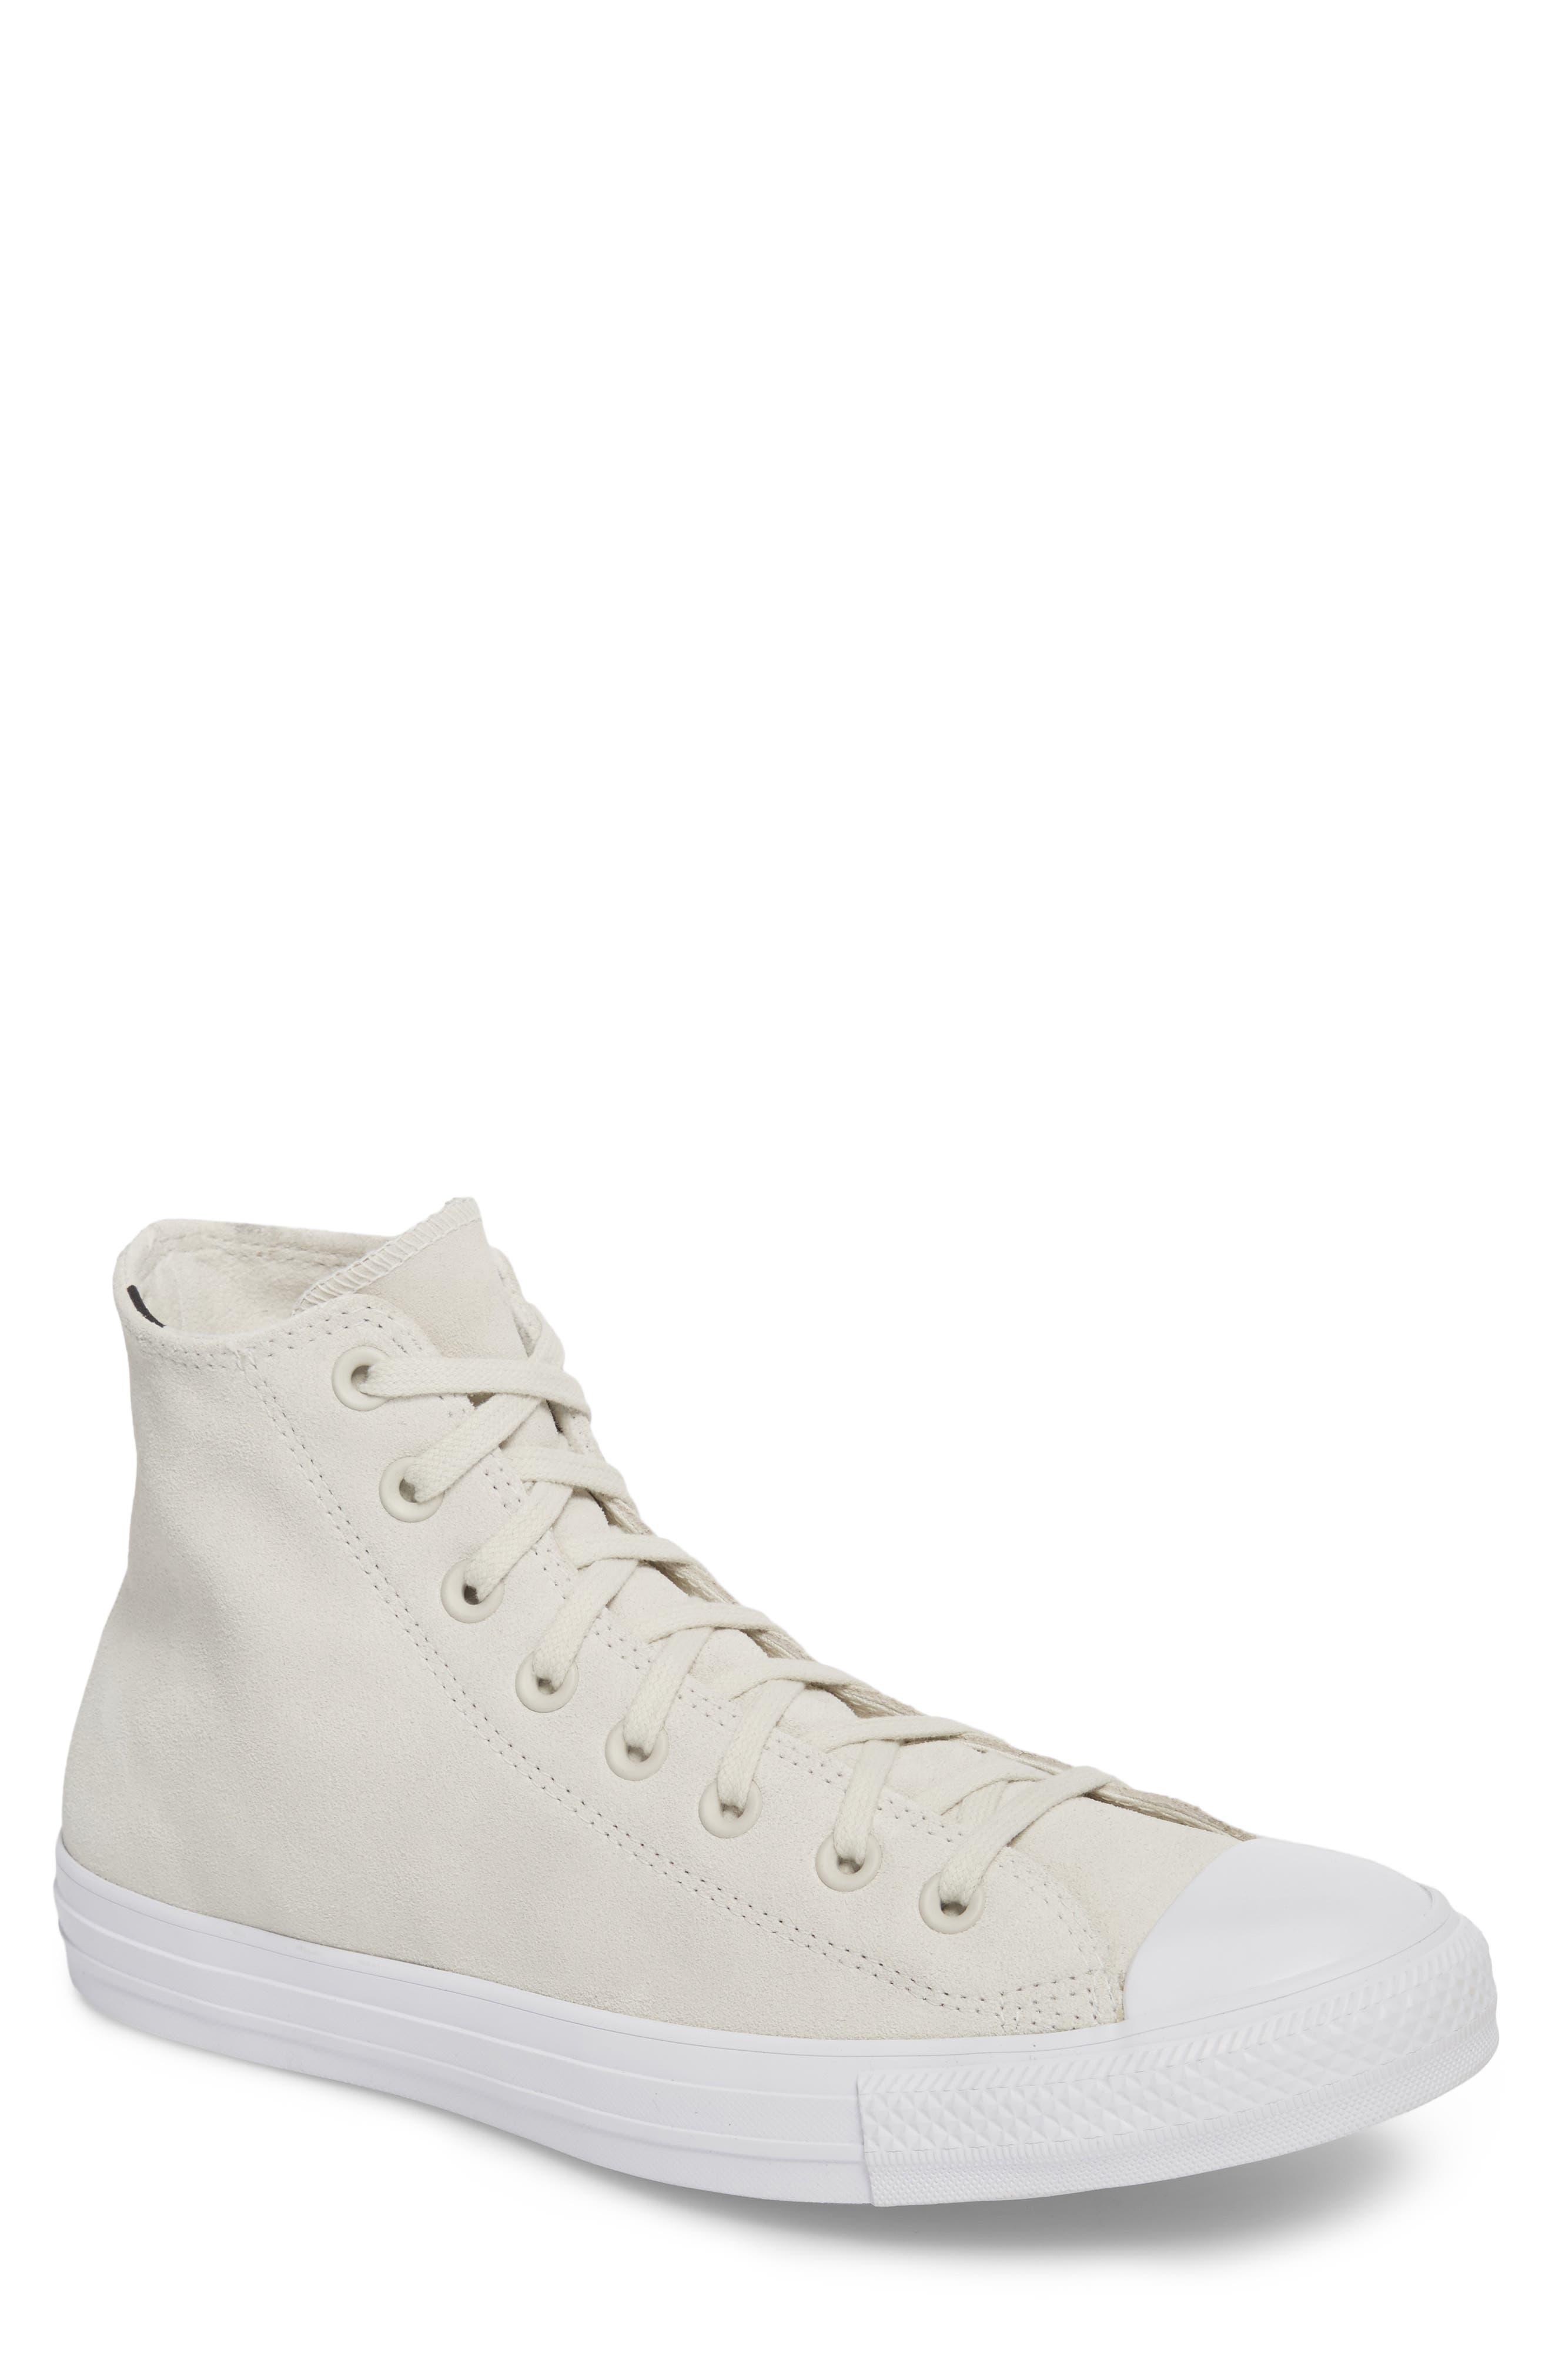 Chuck Taylor<sup>®</sup> All Star<sup>®</sup> Plush Hi Sneaker,                         Main,                         color, 250